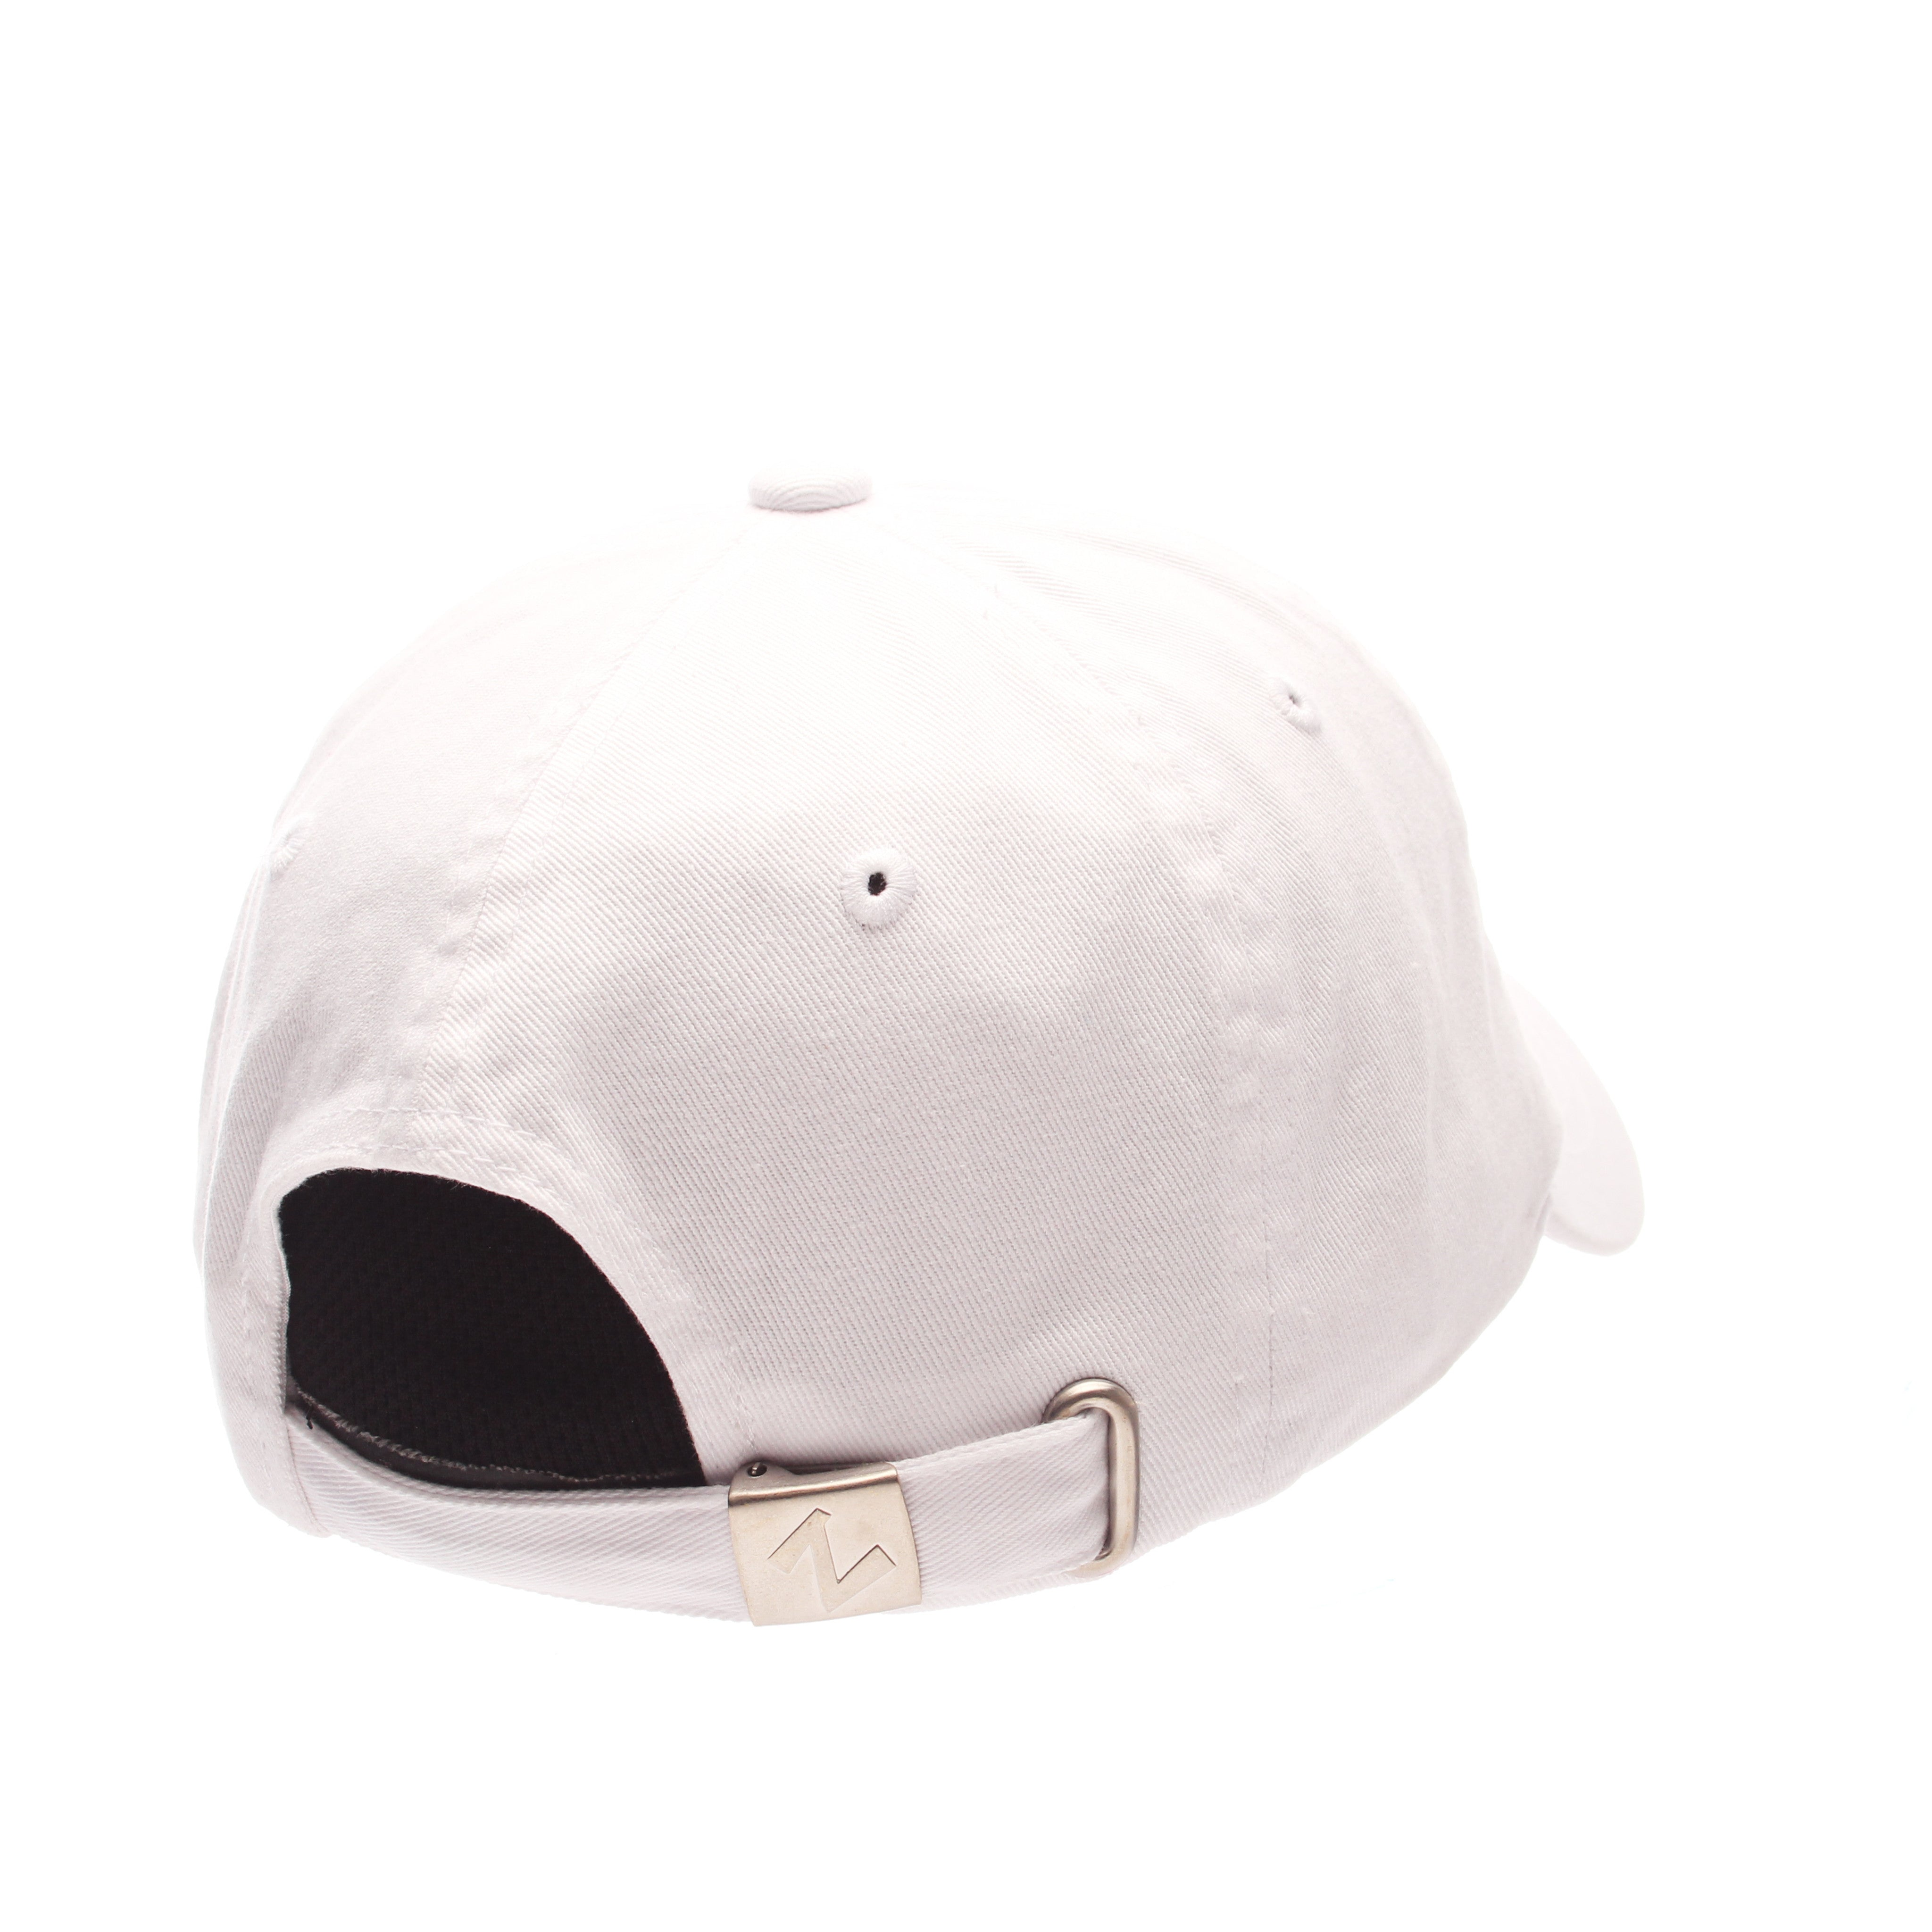 Washington Tomboy Standard (Low) (W) White Washed Adjustable hats by Zephyr